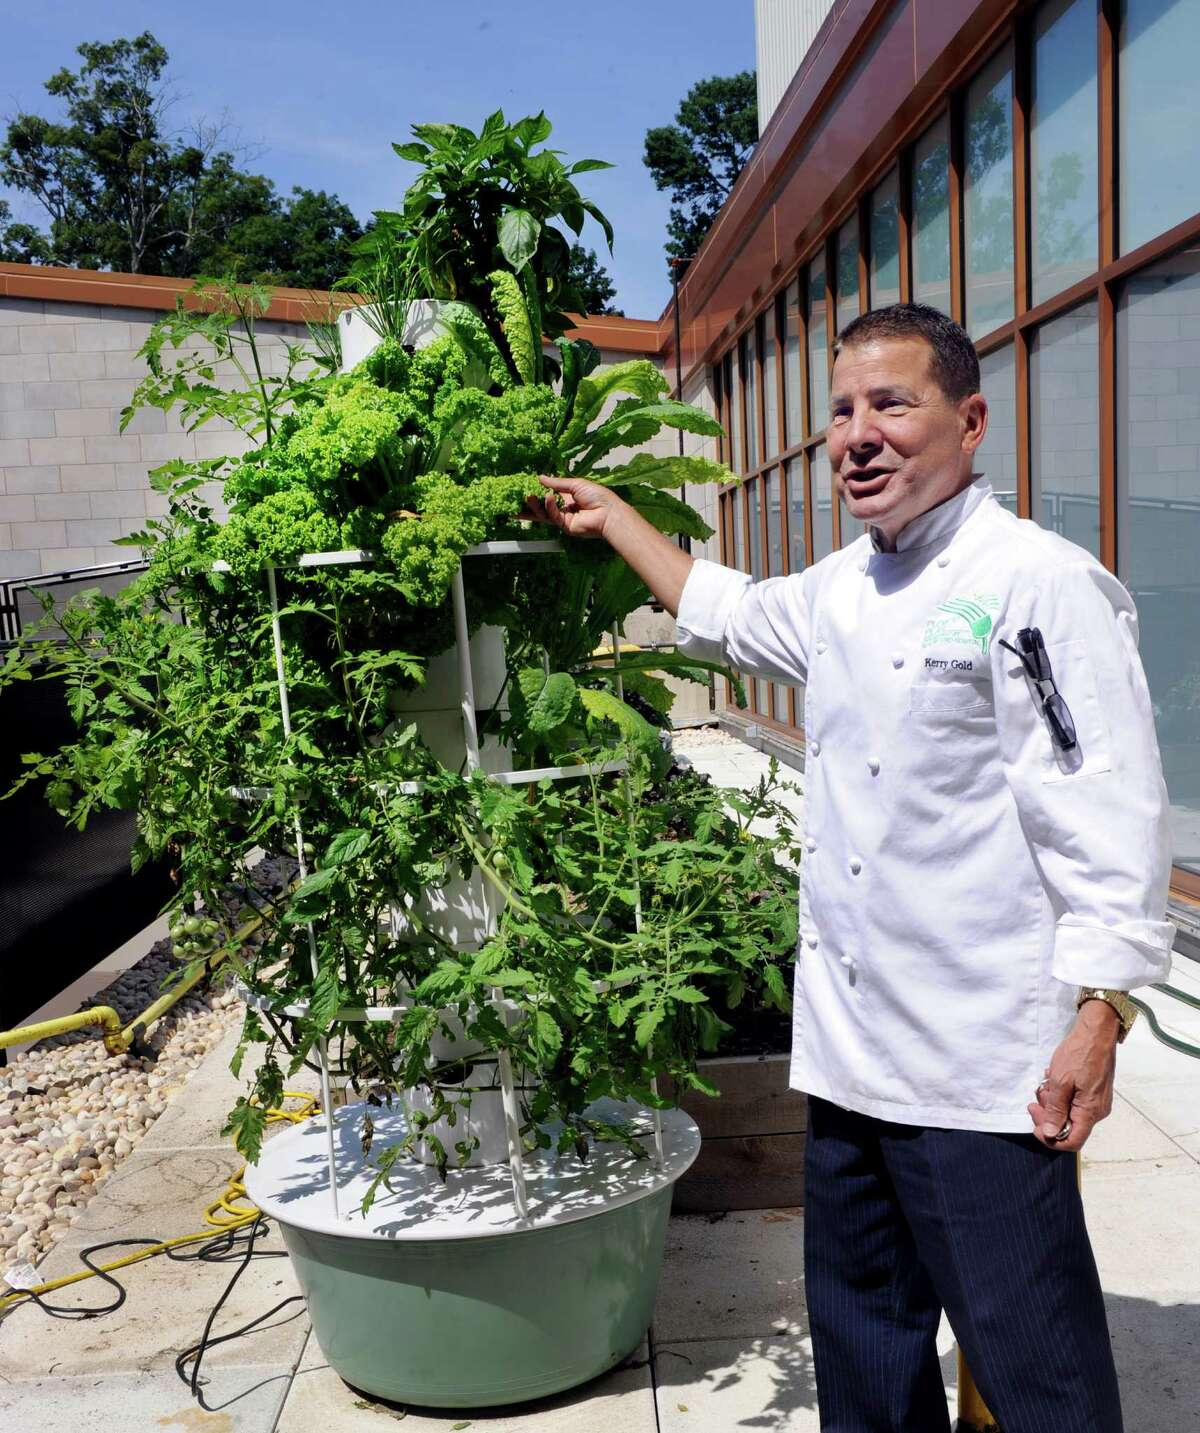 Kerry Gold, head of dining services and chef for New Milford Hospital, stands next to an aeroponic tower, one of several in a rooftop garden at the hospital on Tuesday.